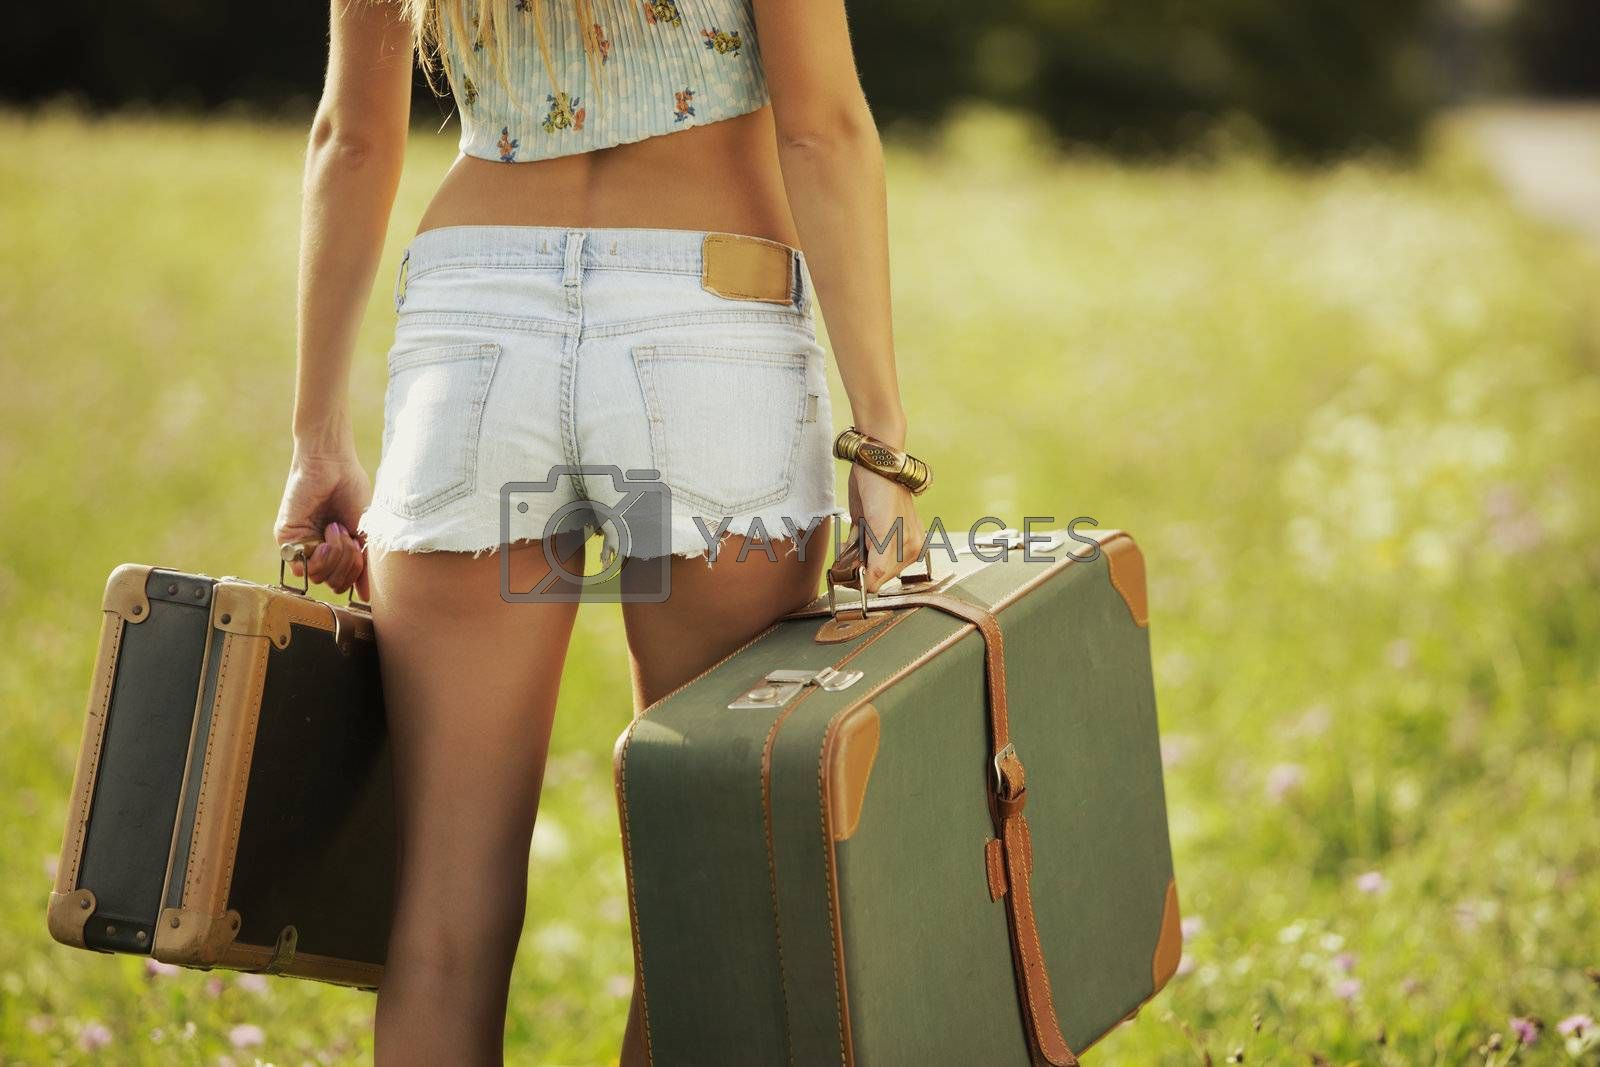 Sexy girl with suitcases, walking on a lawn